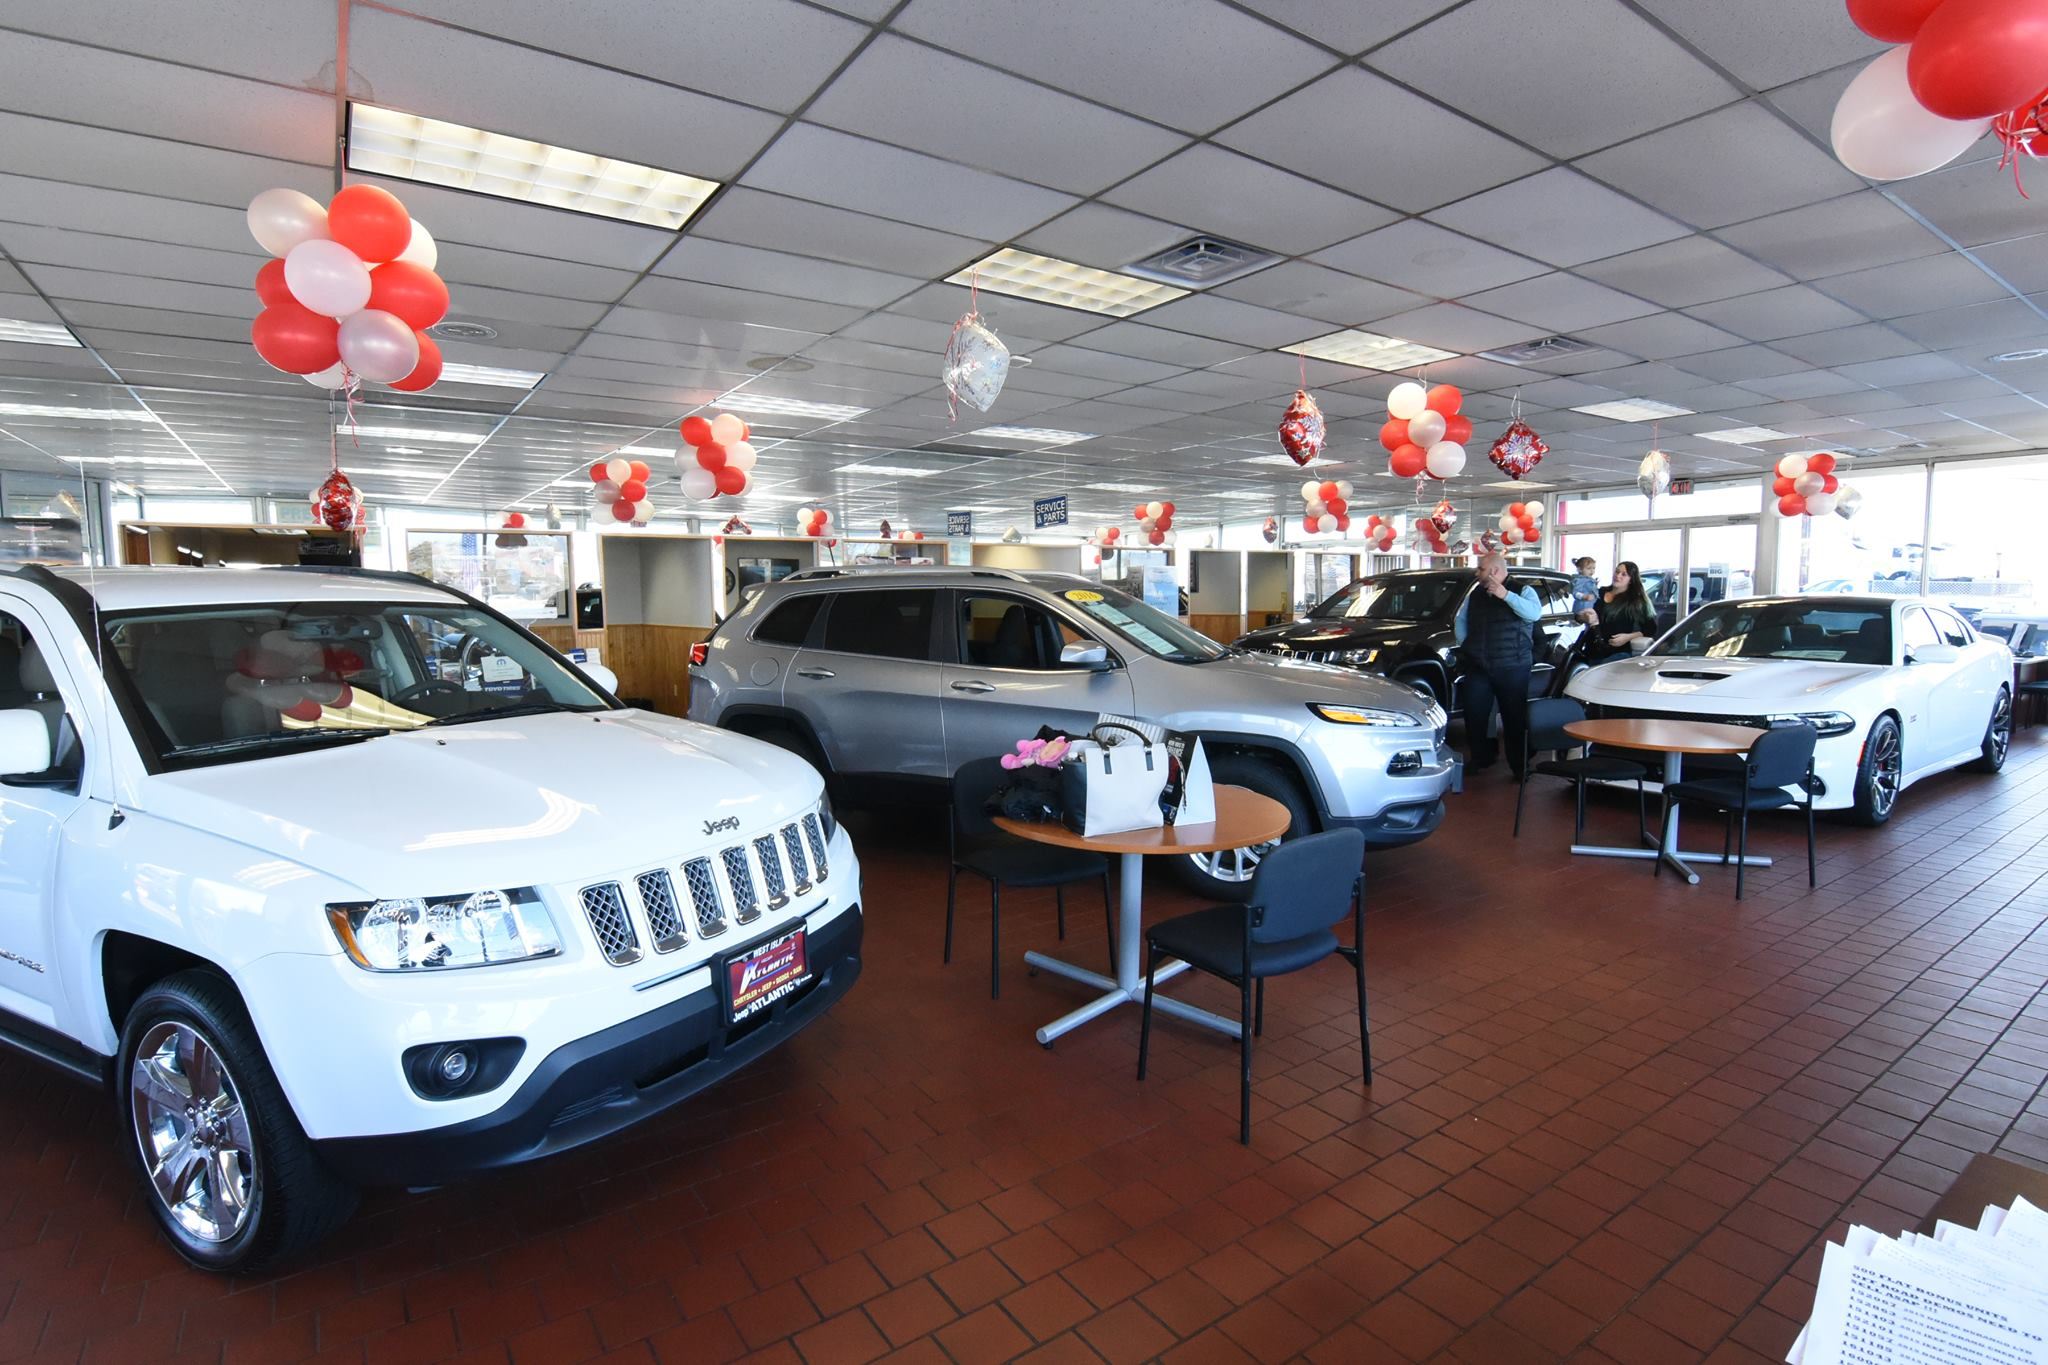 Atlantic chrysler dodge jeep ram - Along